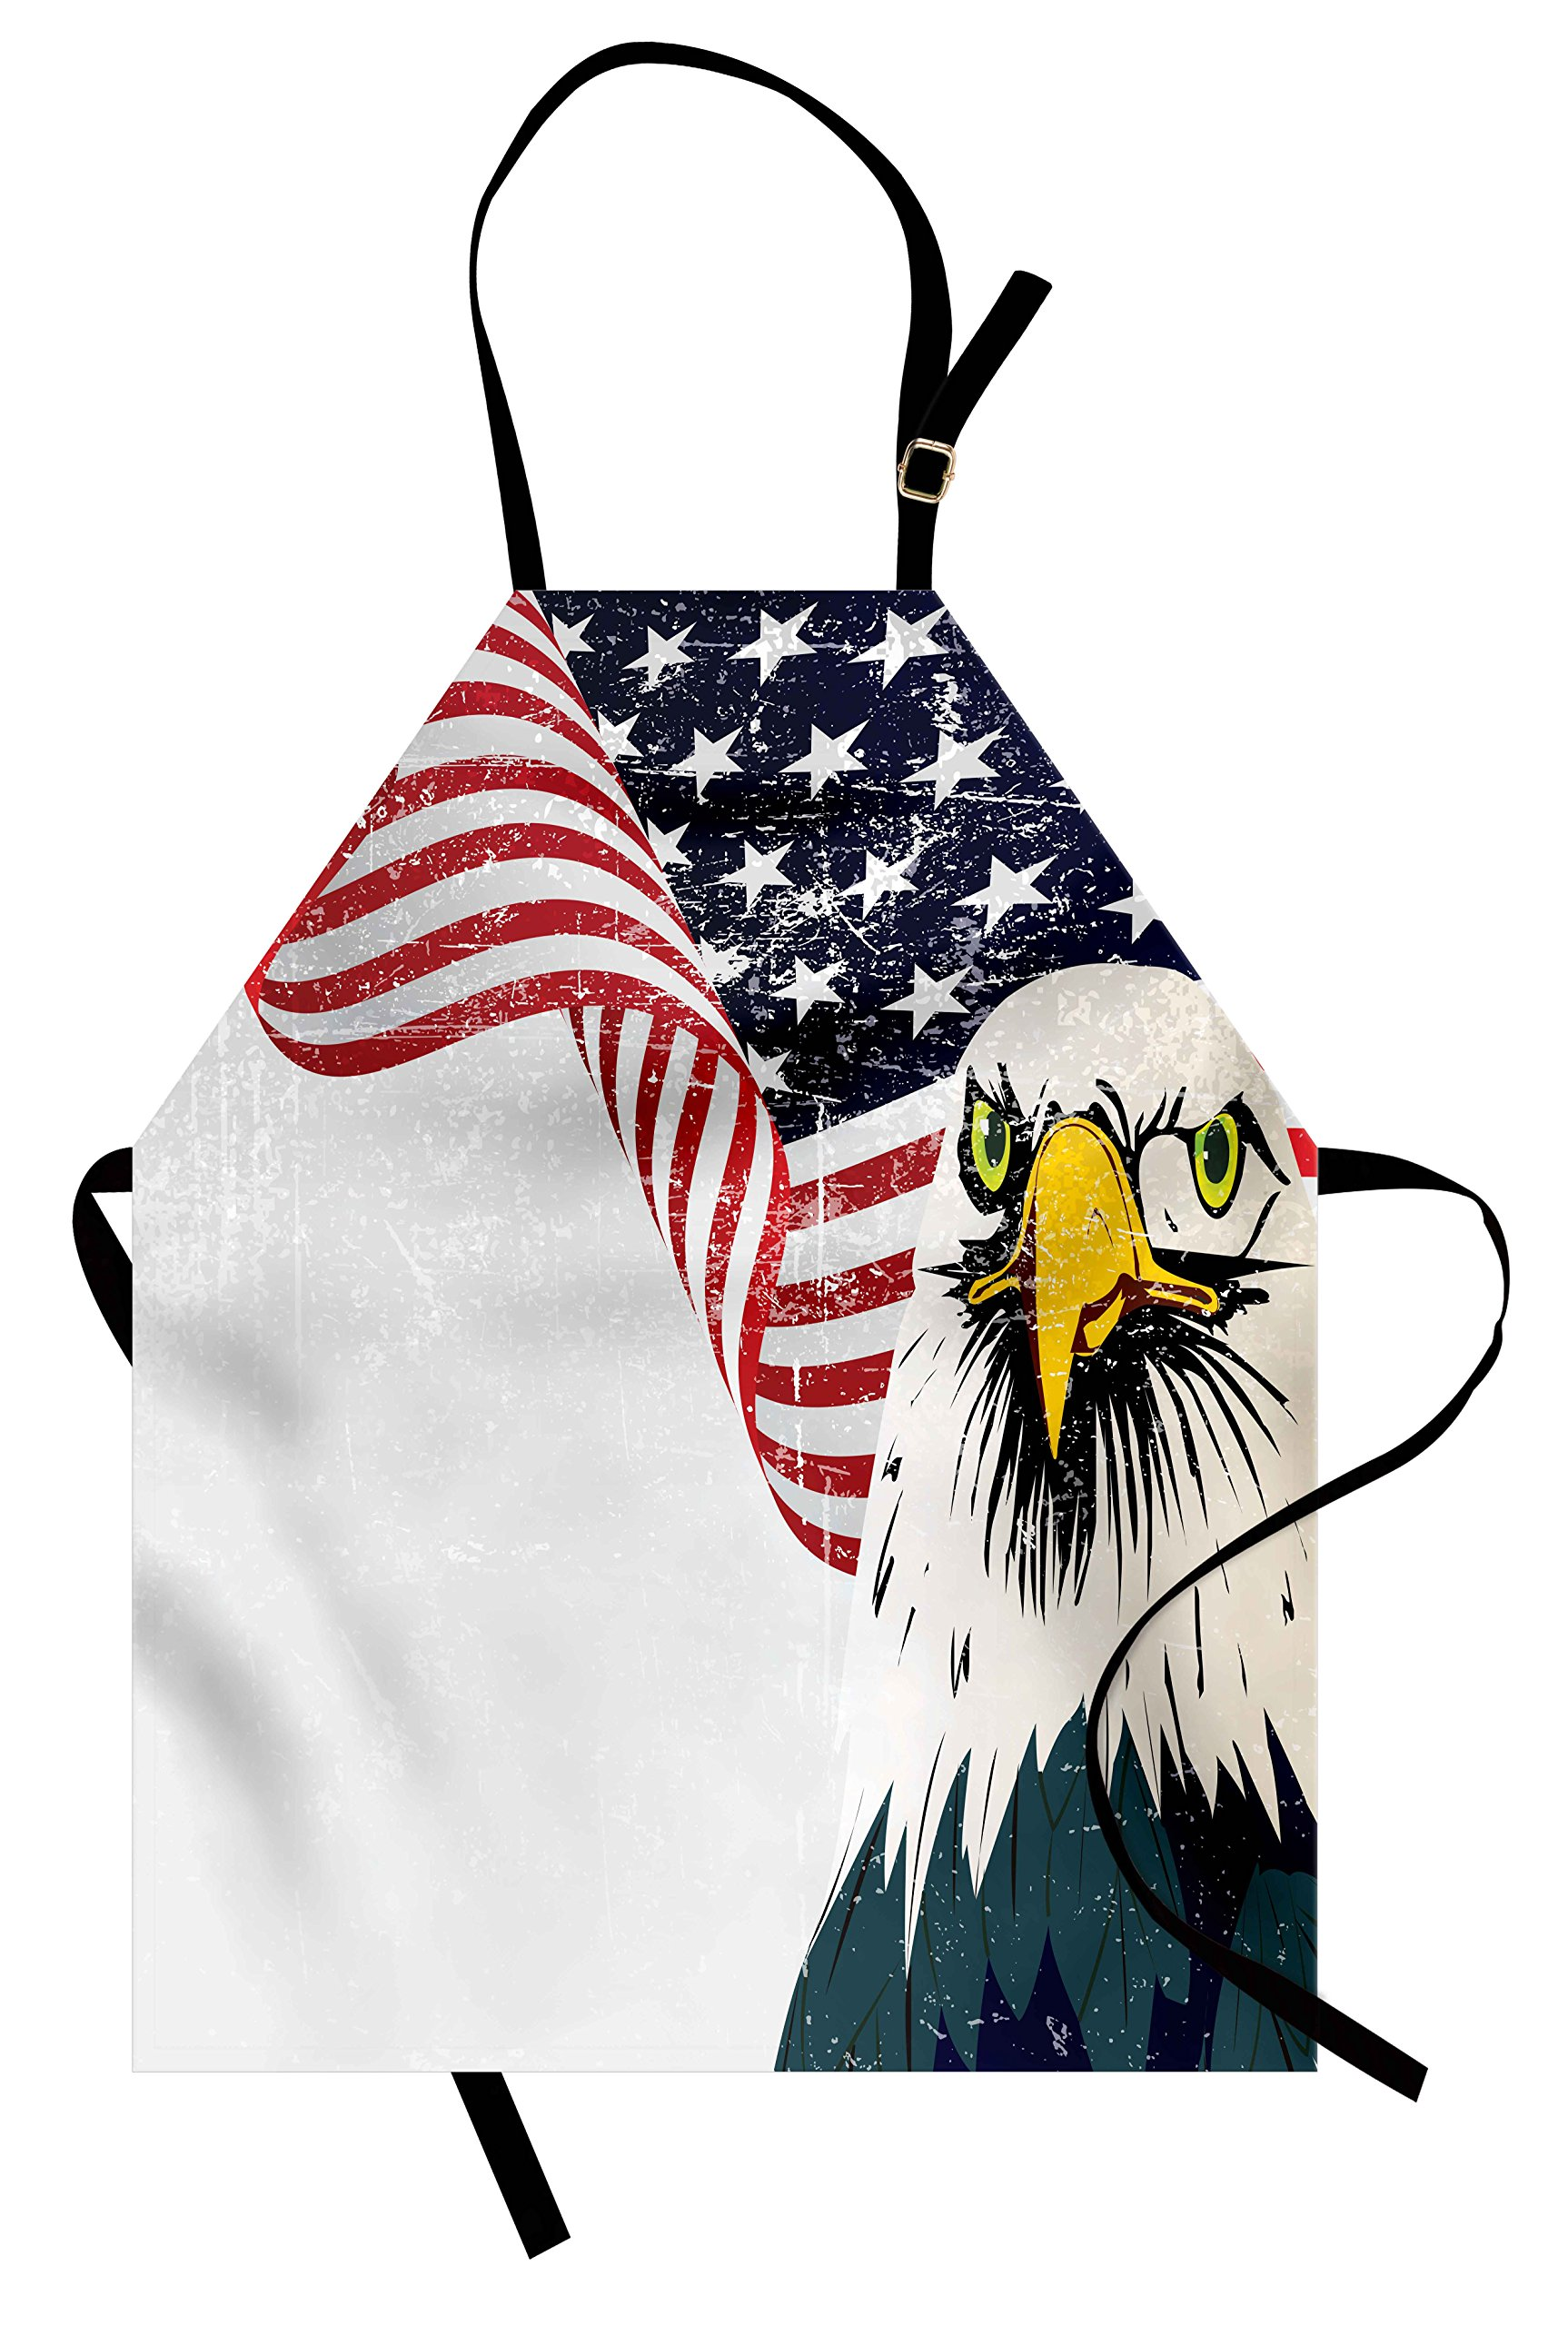 Ambesonne American Flag Apron, American Eagle with Grunge Effect 4th of July USA Country Independence Image, Unisex Kitchen Bib Apron with Adjustable Neck for Cooking Baking Gardening, Multicolor